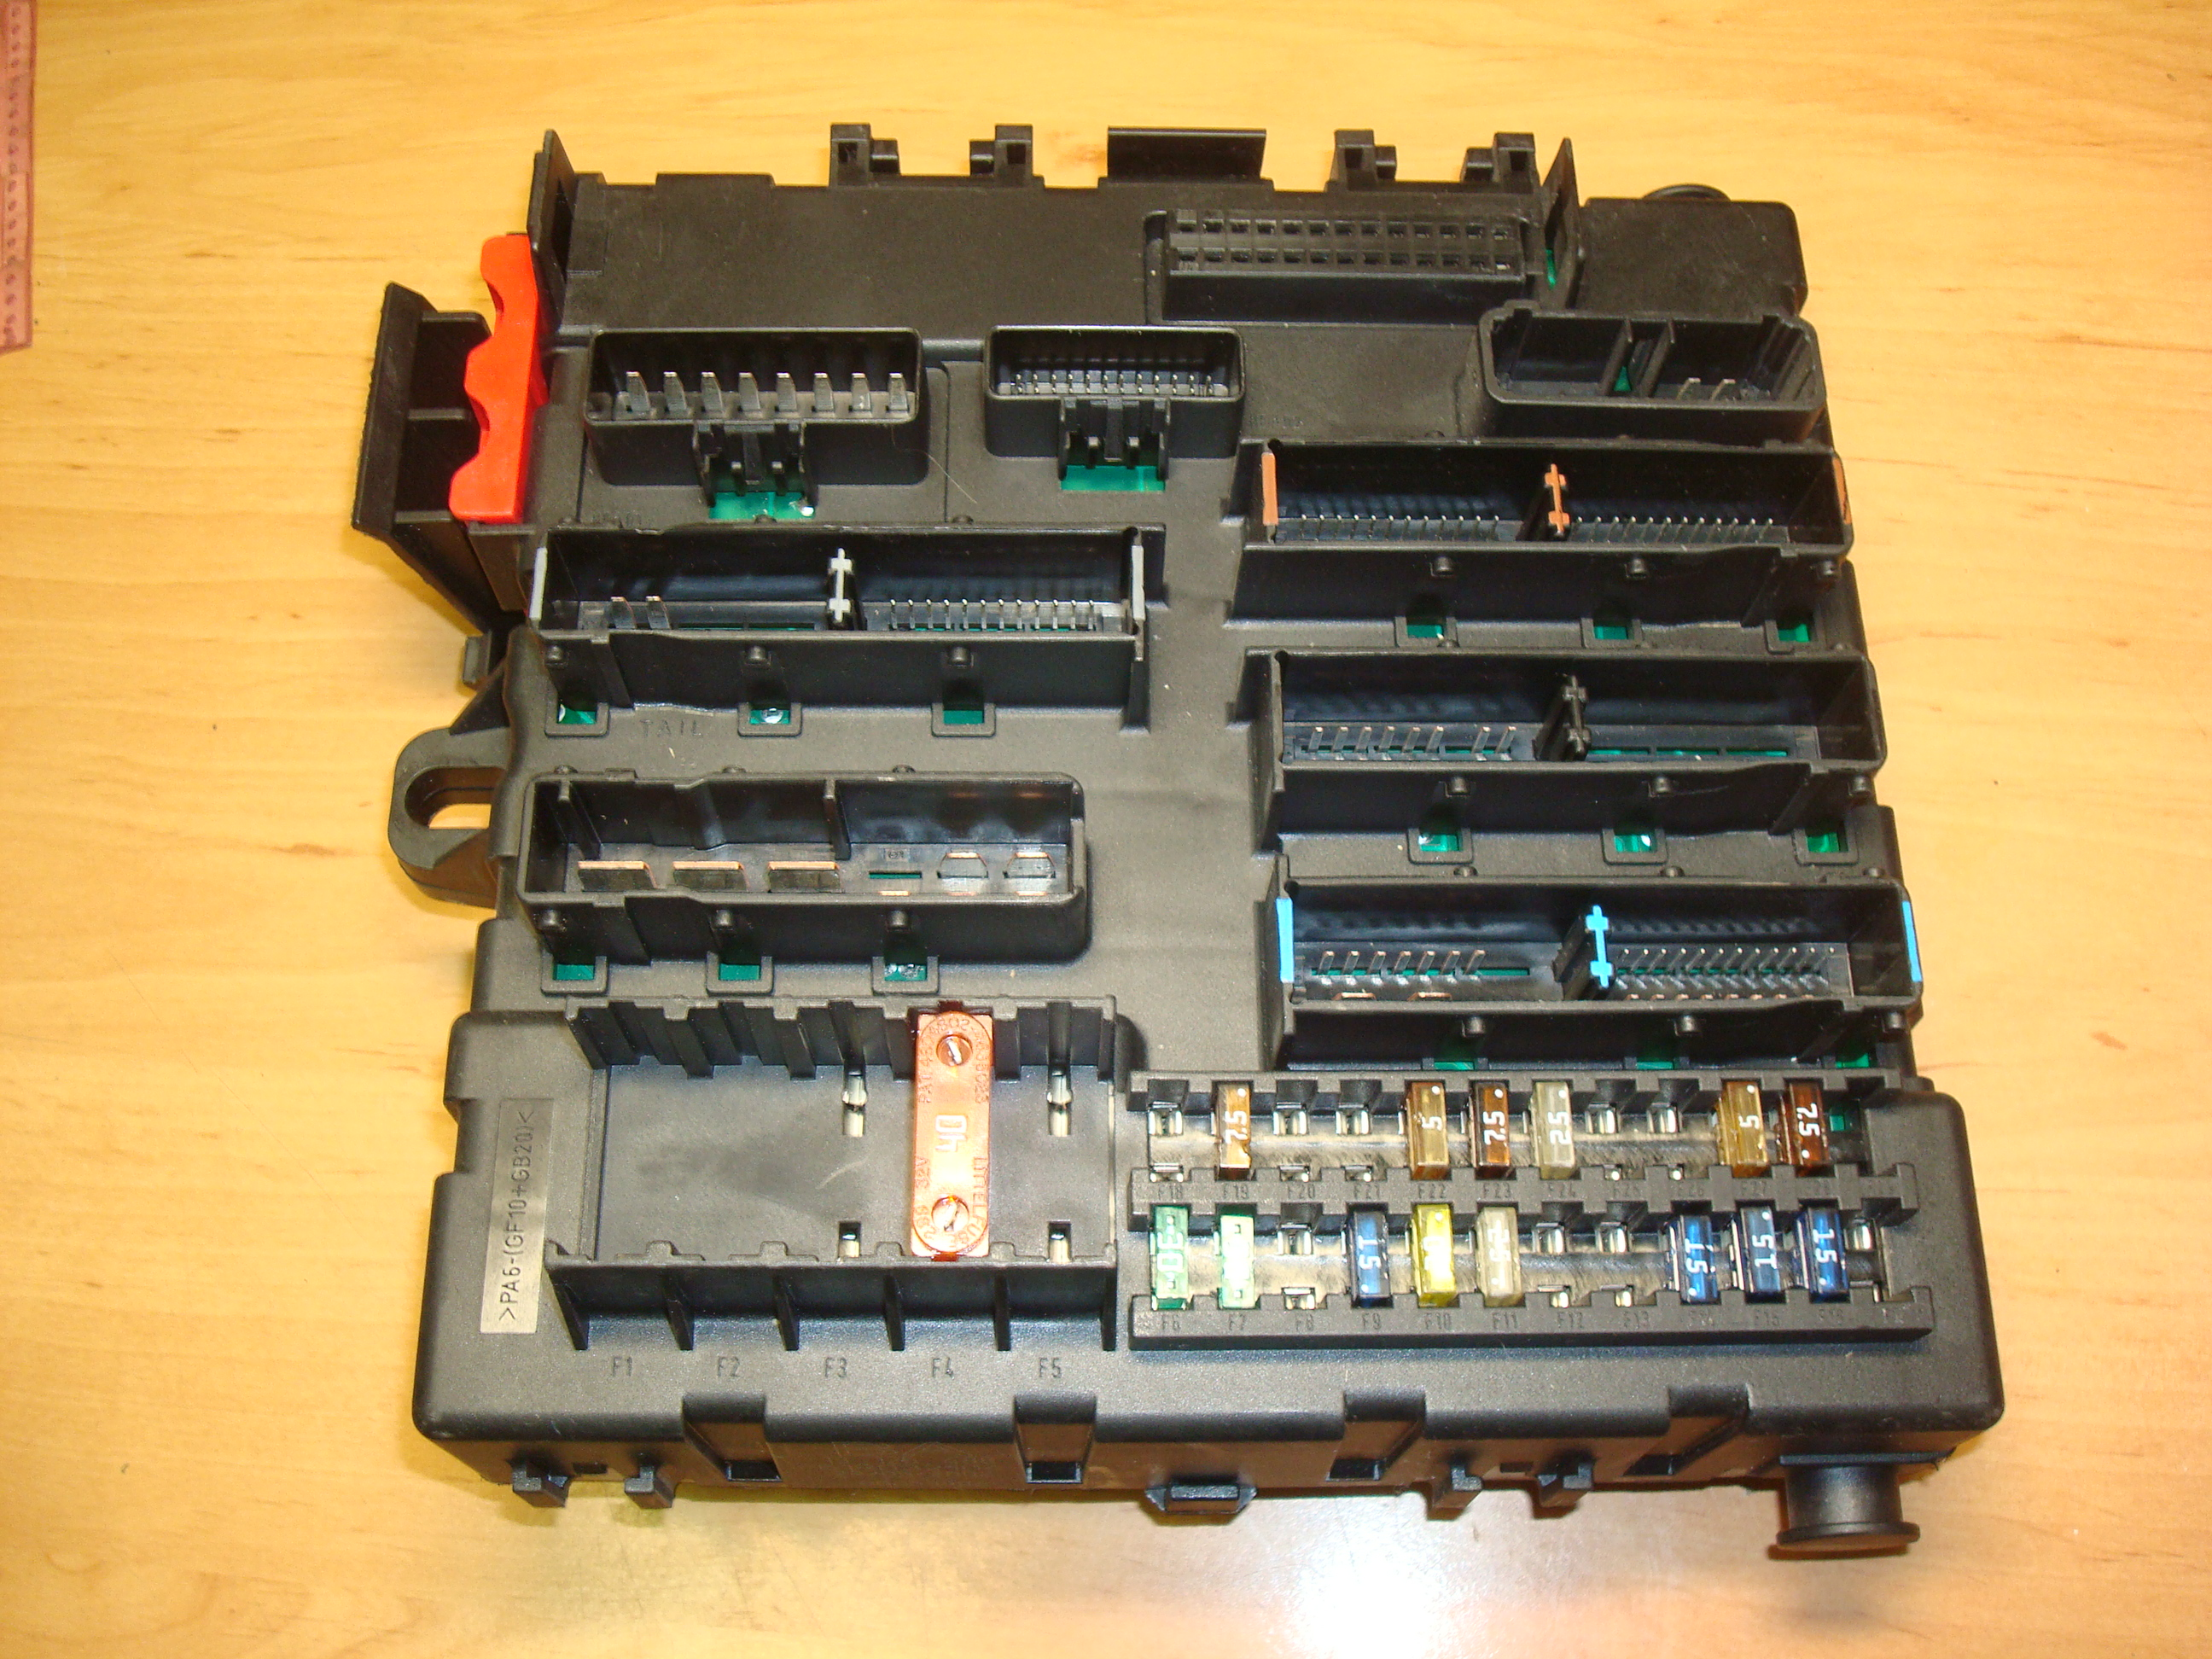 Opel, Vauxhall Vectra C, Fuse Box, ECU, 13125488 (Article: 13125488, 13 125  488, 519032106)